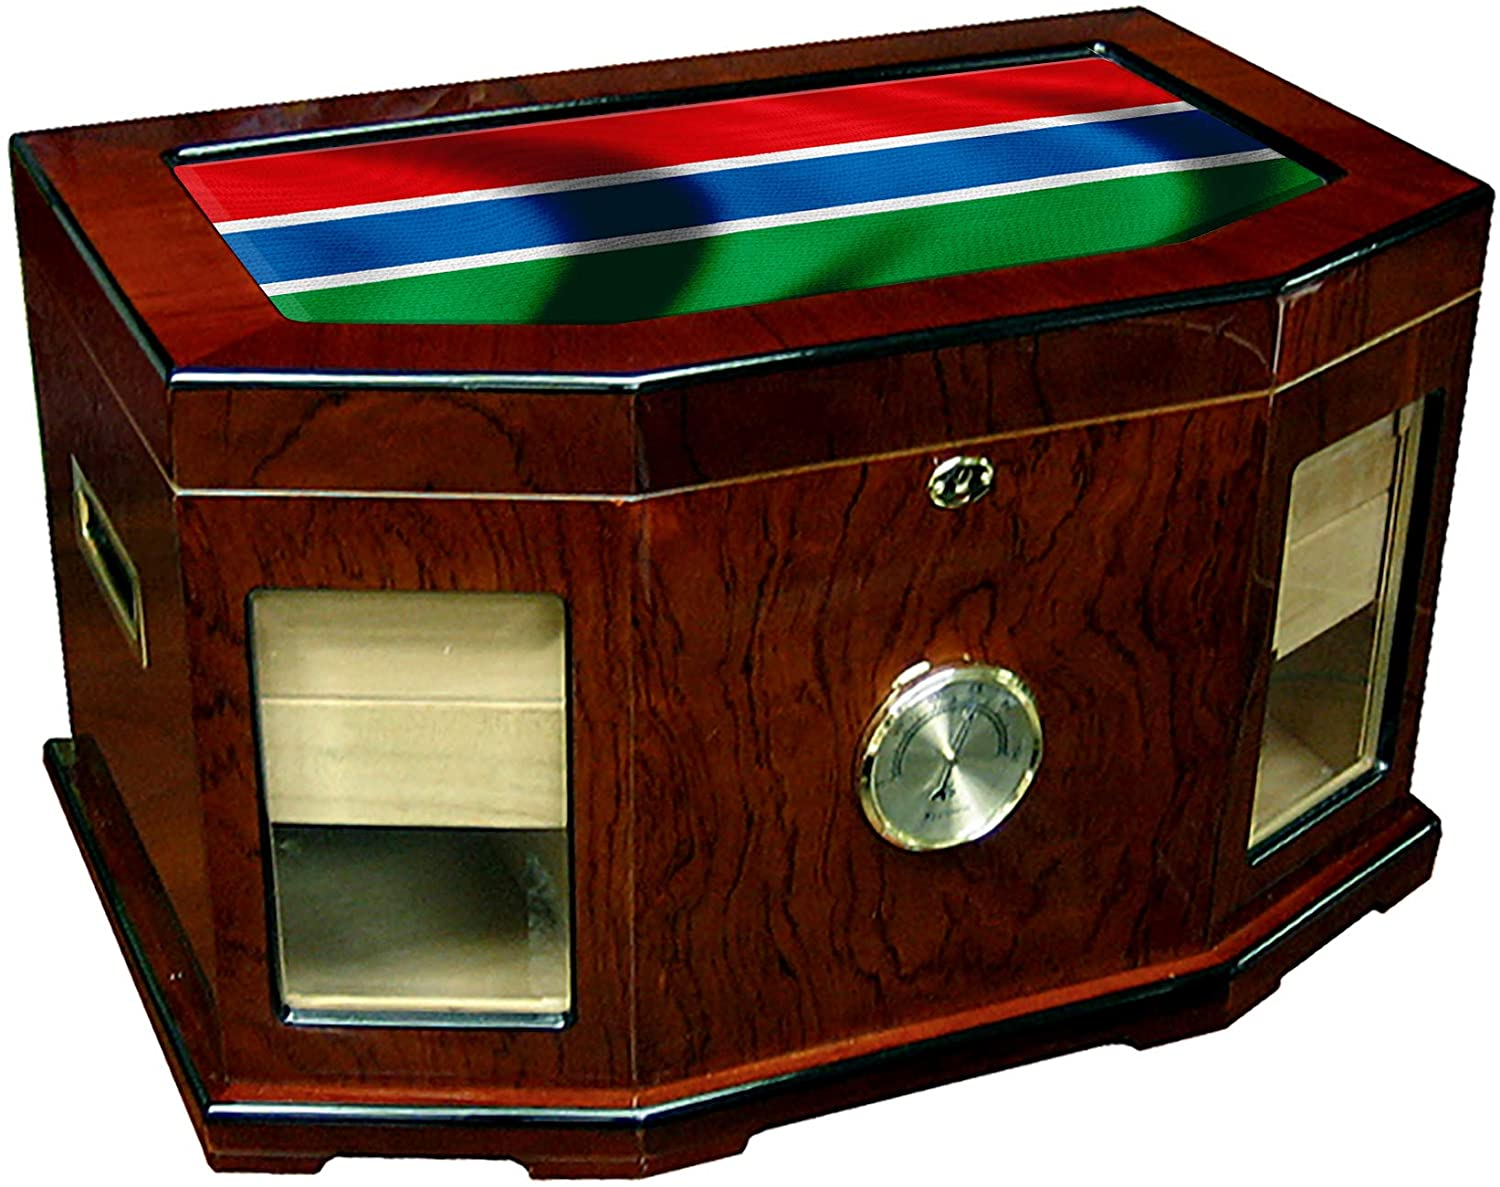 Large Premium Desktop Humidor - Glass Top - Flag of Gambia (Gambian) - Waves Design - 300 Cigar Capacity - Cedar Lined with Two humidifiers & Large Front Mounted Hygrometer.